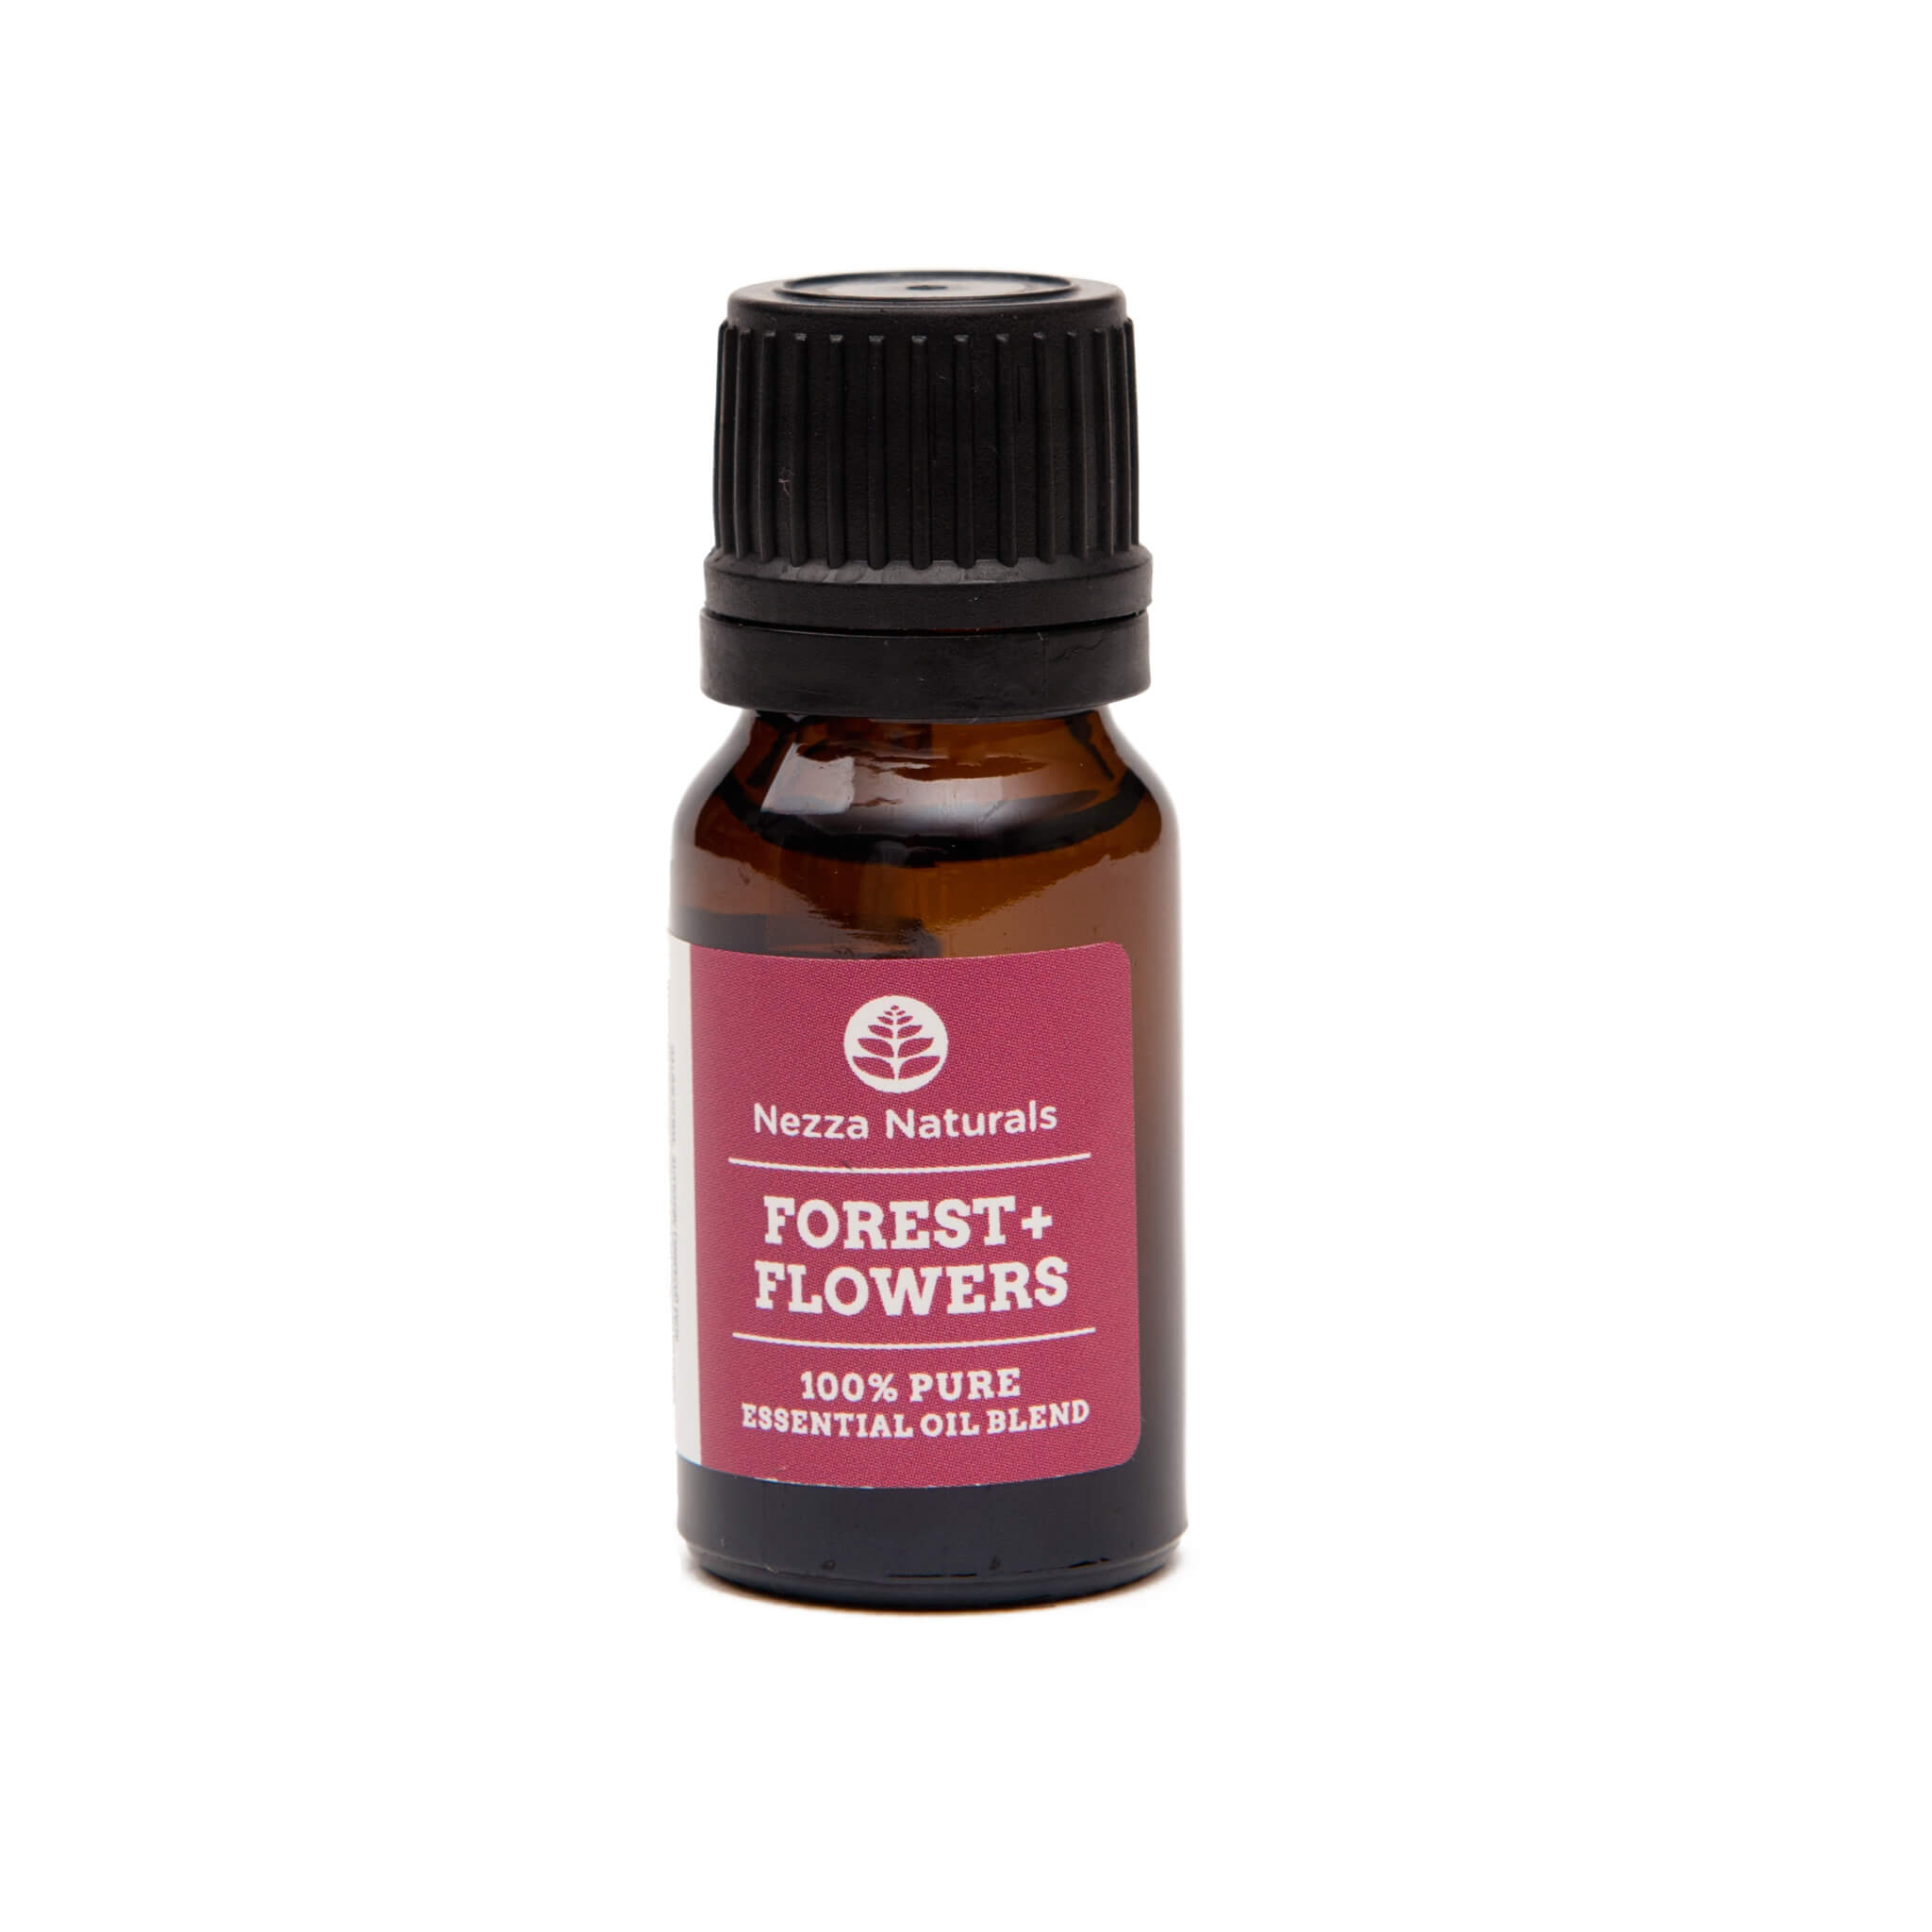 Forest & Flowers Essential Oil Blend